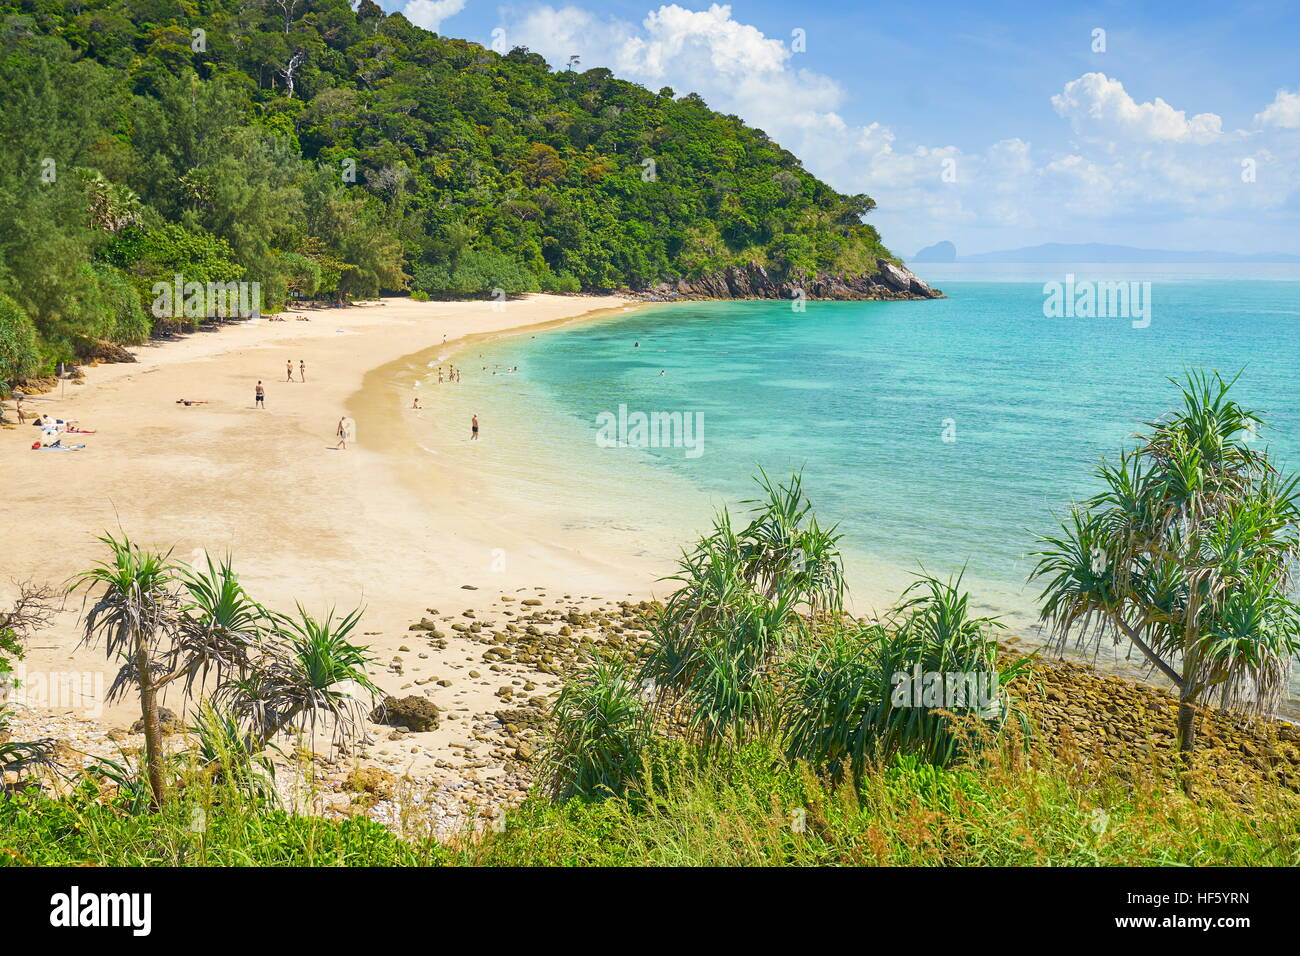 Plage de Ko Lanta National Park, Thaïlande Photo Stock